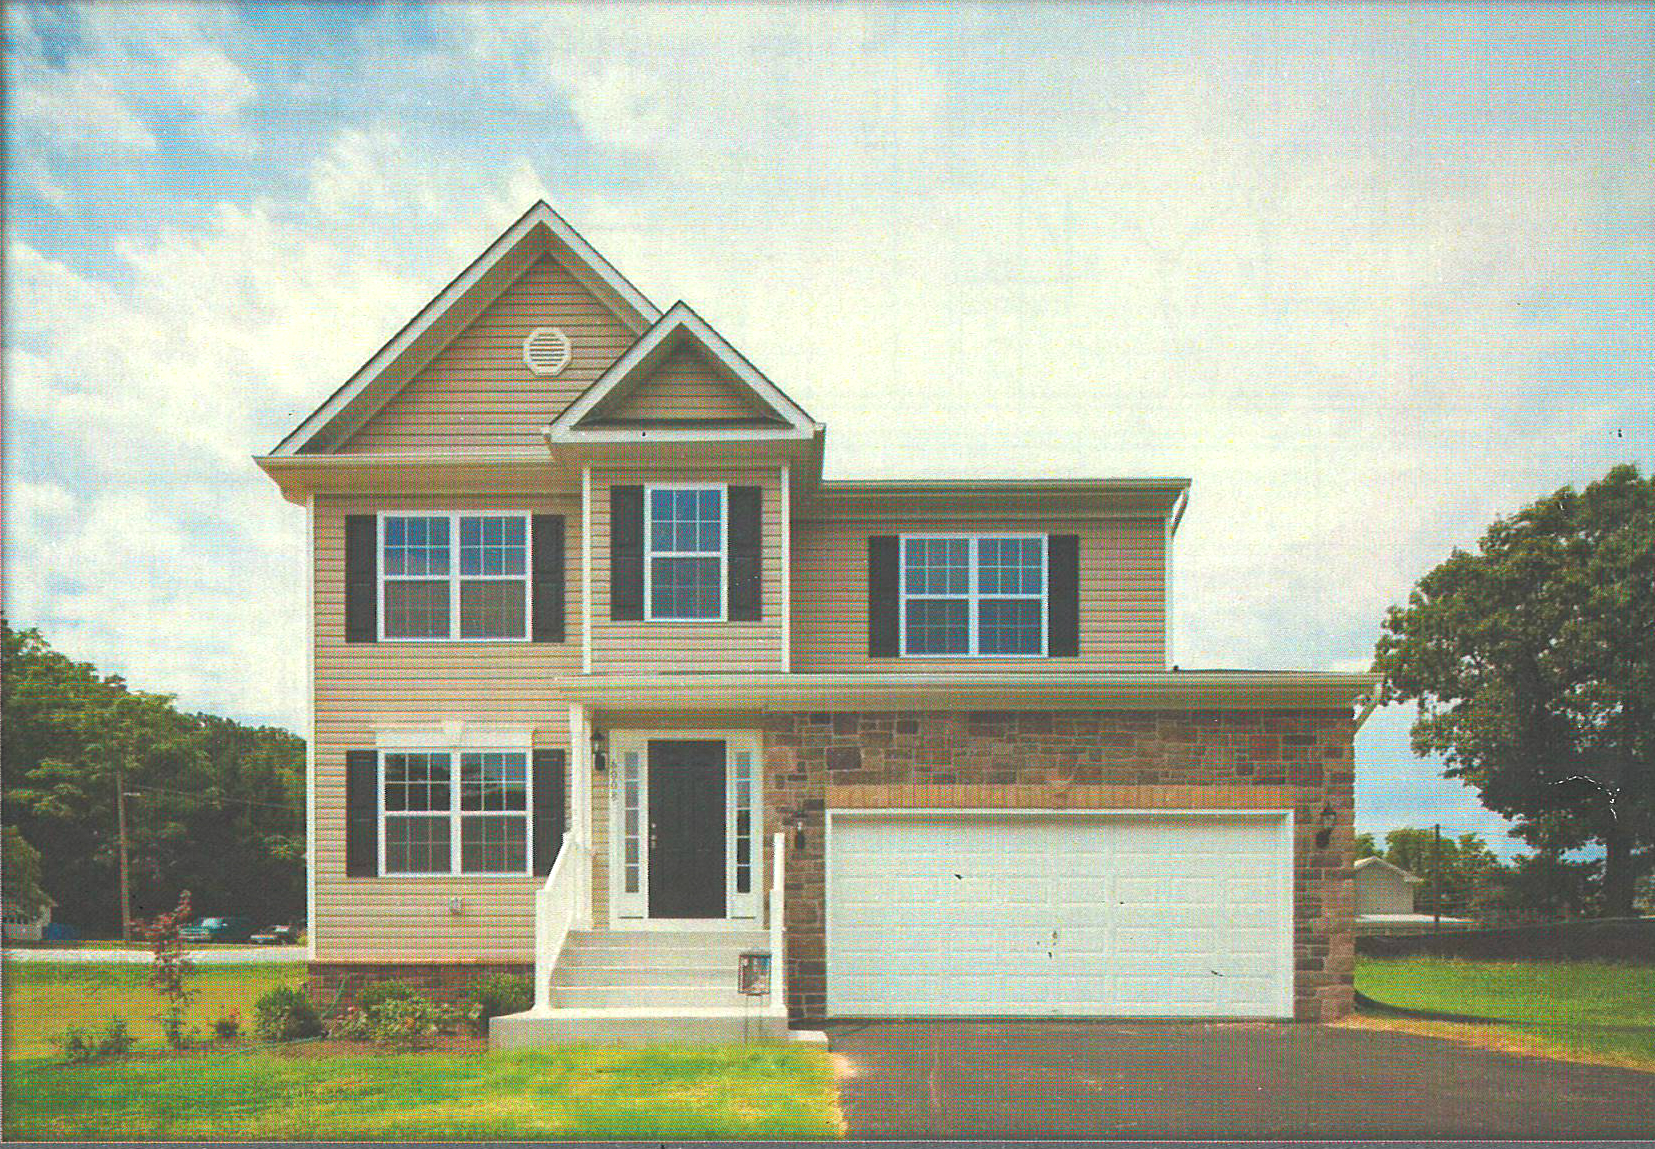 This Harmony Builders Rockburne model is being built by buyer clients represented by Jerry Kline, Realtor, Keller Williams Flagship of Maryland. The new-construction home will be located 10 minutes from quickly growing Fort Meade, Maryland, and should be completed by July.